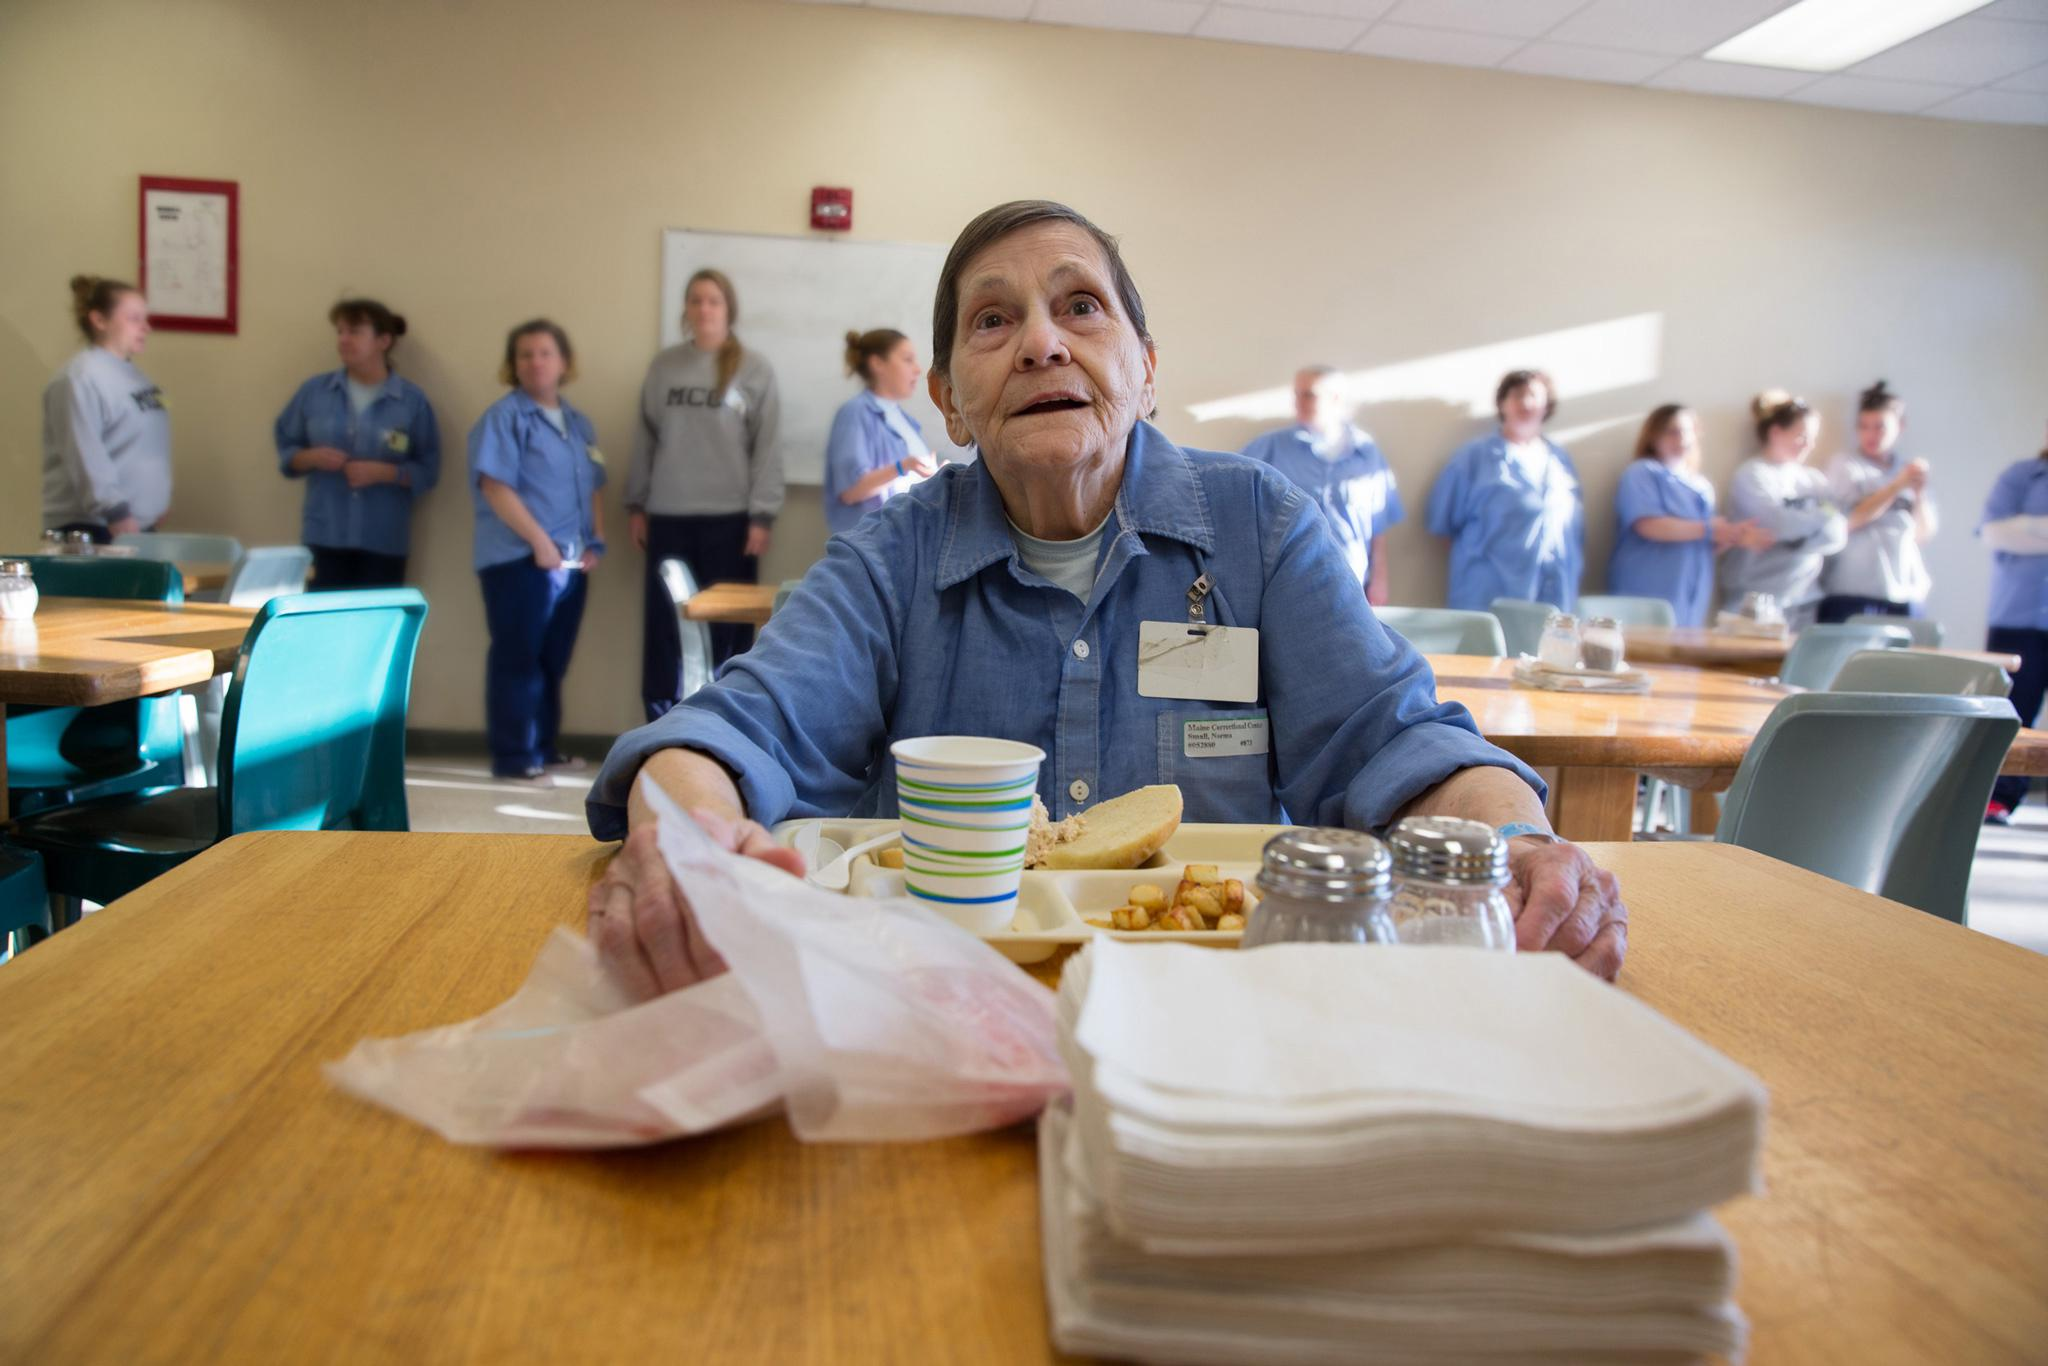 Elderly woman eating in prison